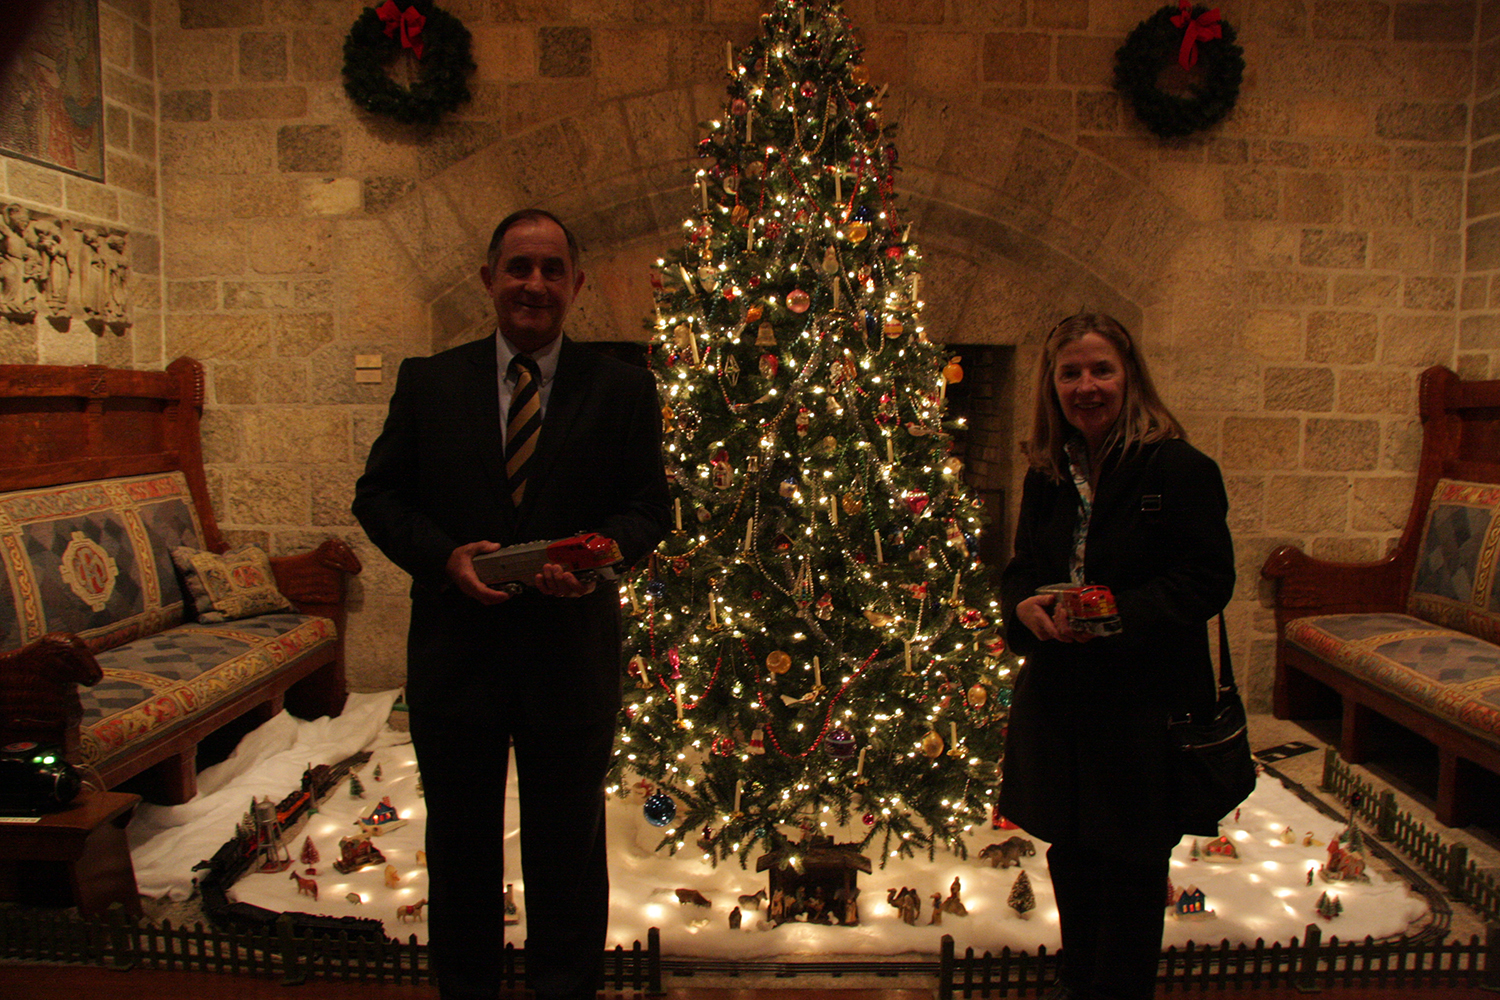 Figure 5: Steve Chardos and his sister Louise Chardos, standing by Glencairn's Christmas tree, hold two of the 1950s Lionel toy trains they donated to the Museum.